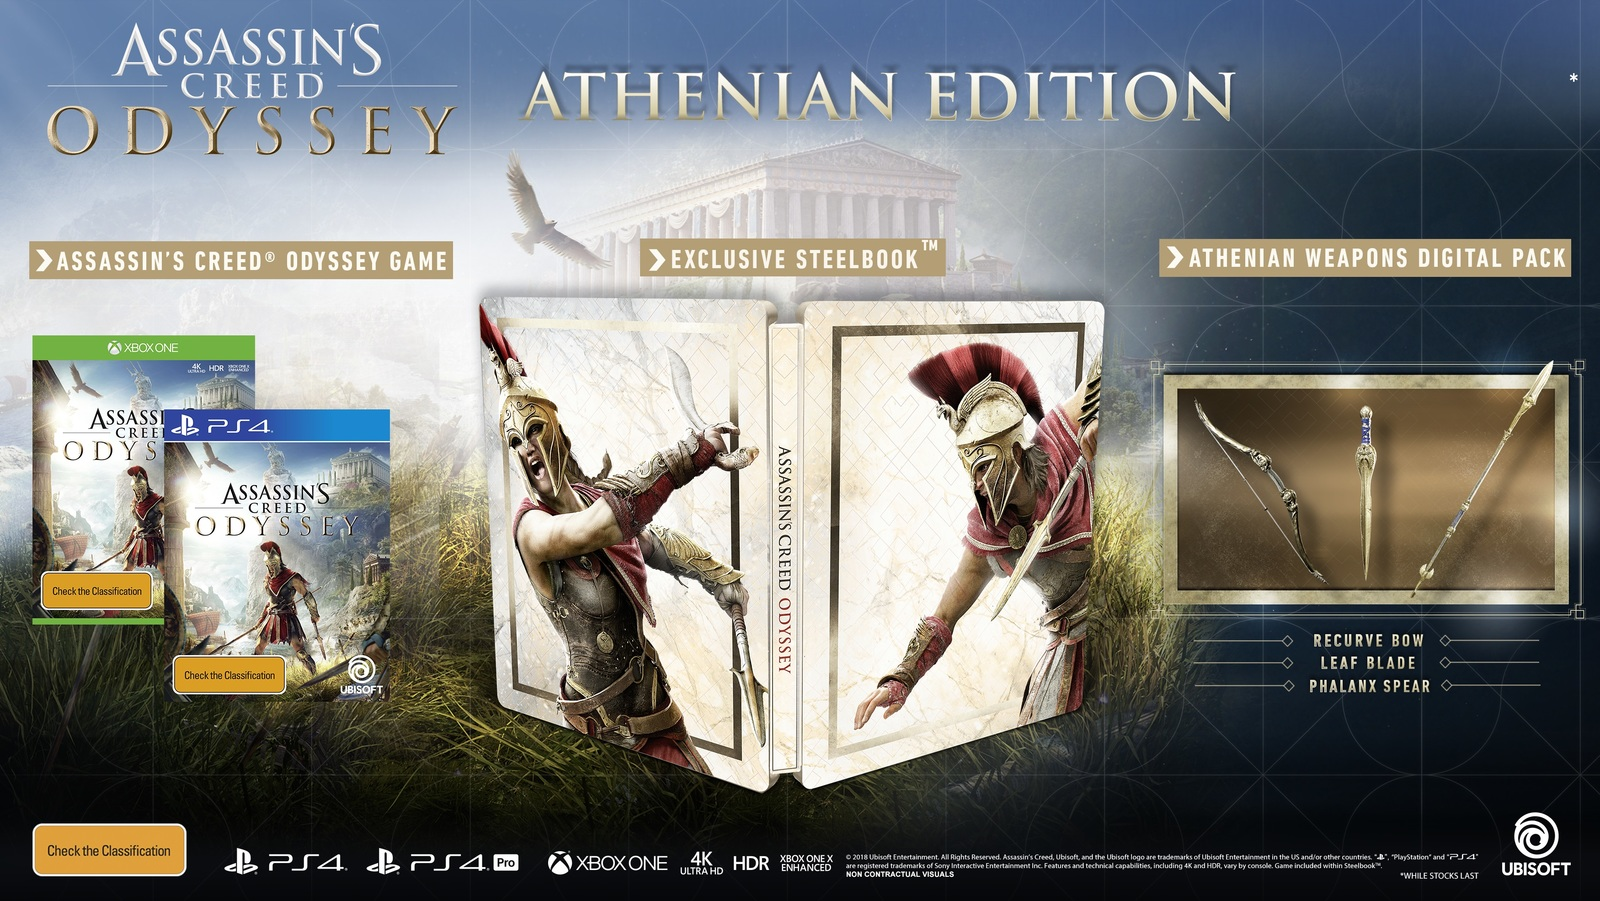 Assassins Creed Odyssey Athenian Edition PS4 On Sale